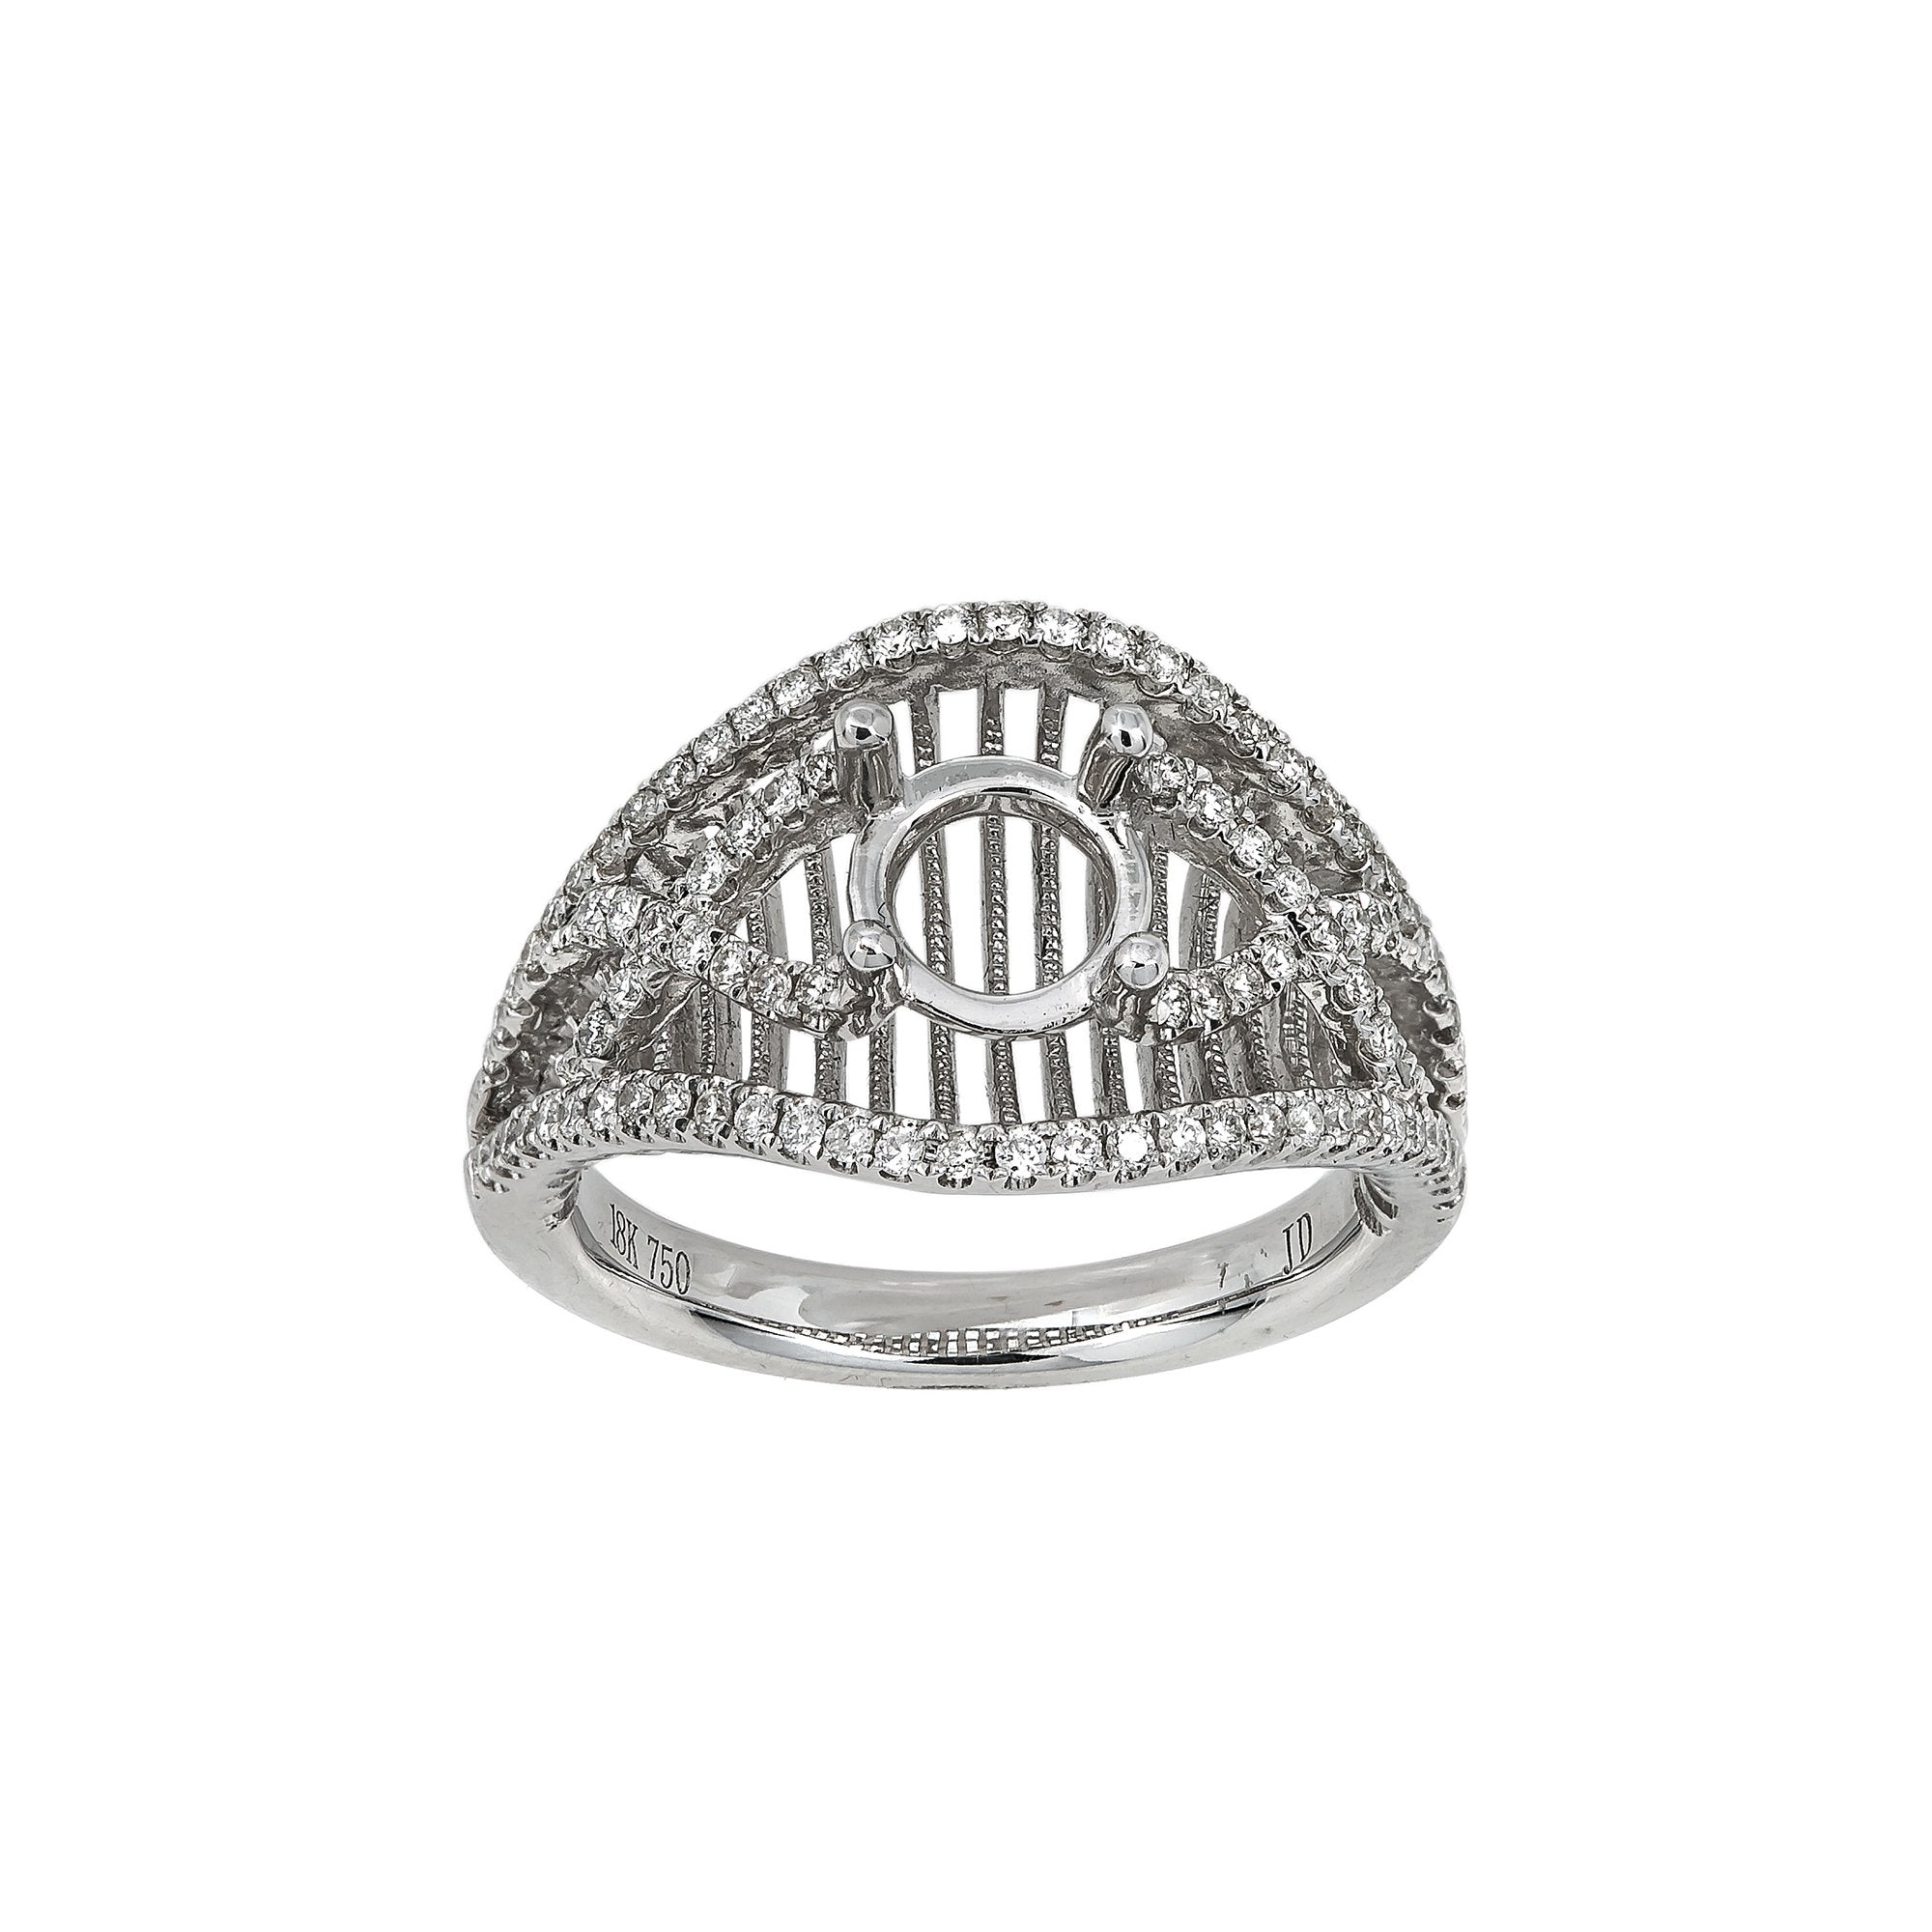 18K White Gold BJ6928R Women's Ring With 0.55 CT Diamonds